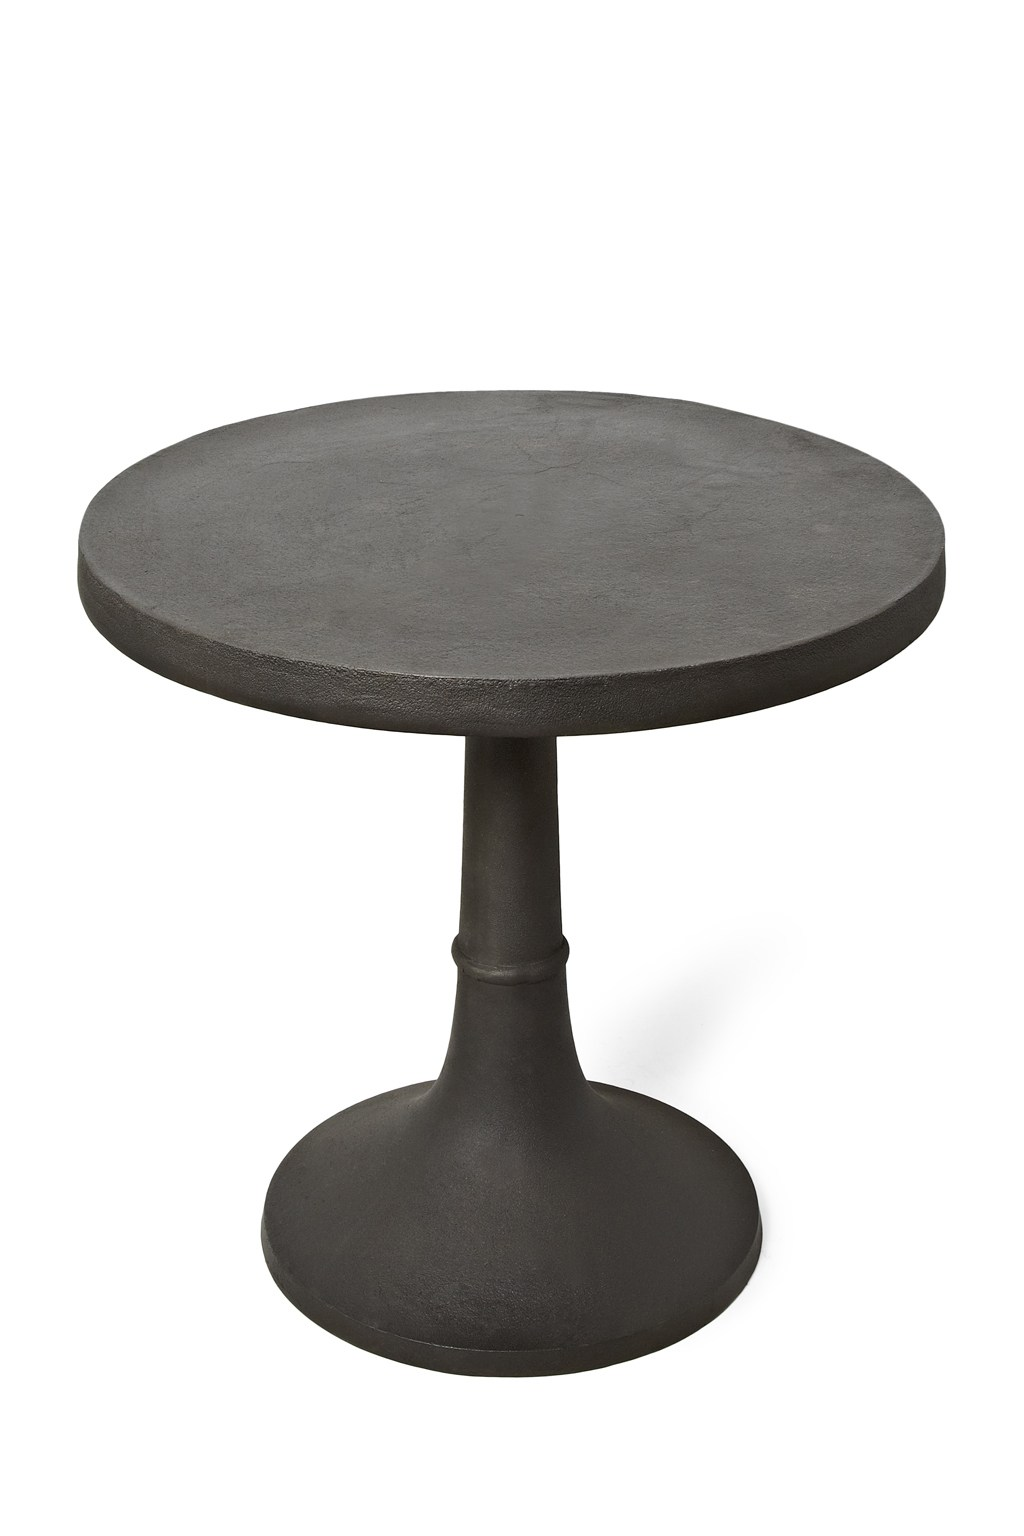 Gunmetal table furniture french connection for Furniture x connection